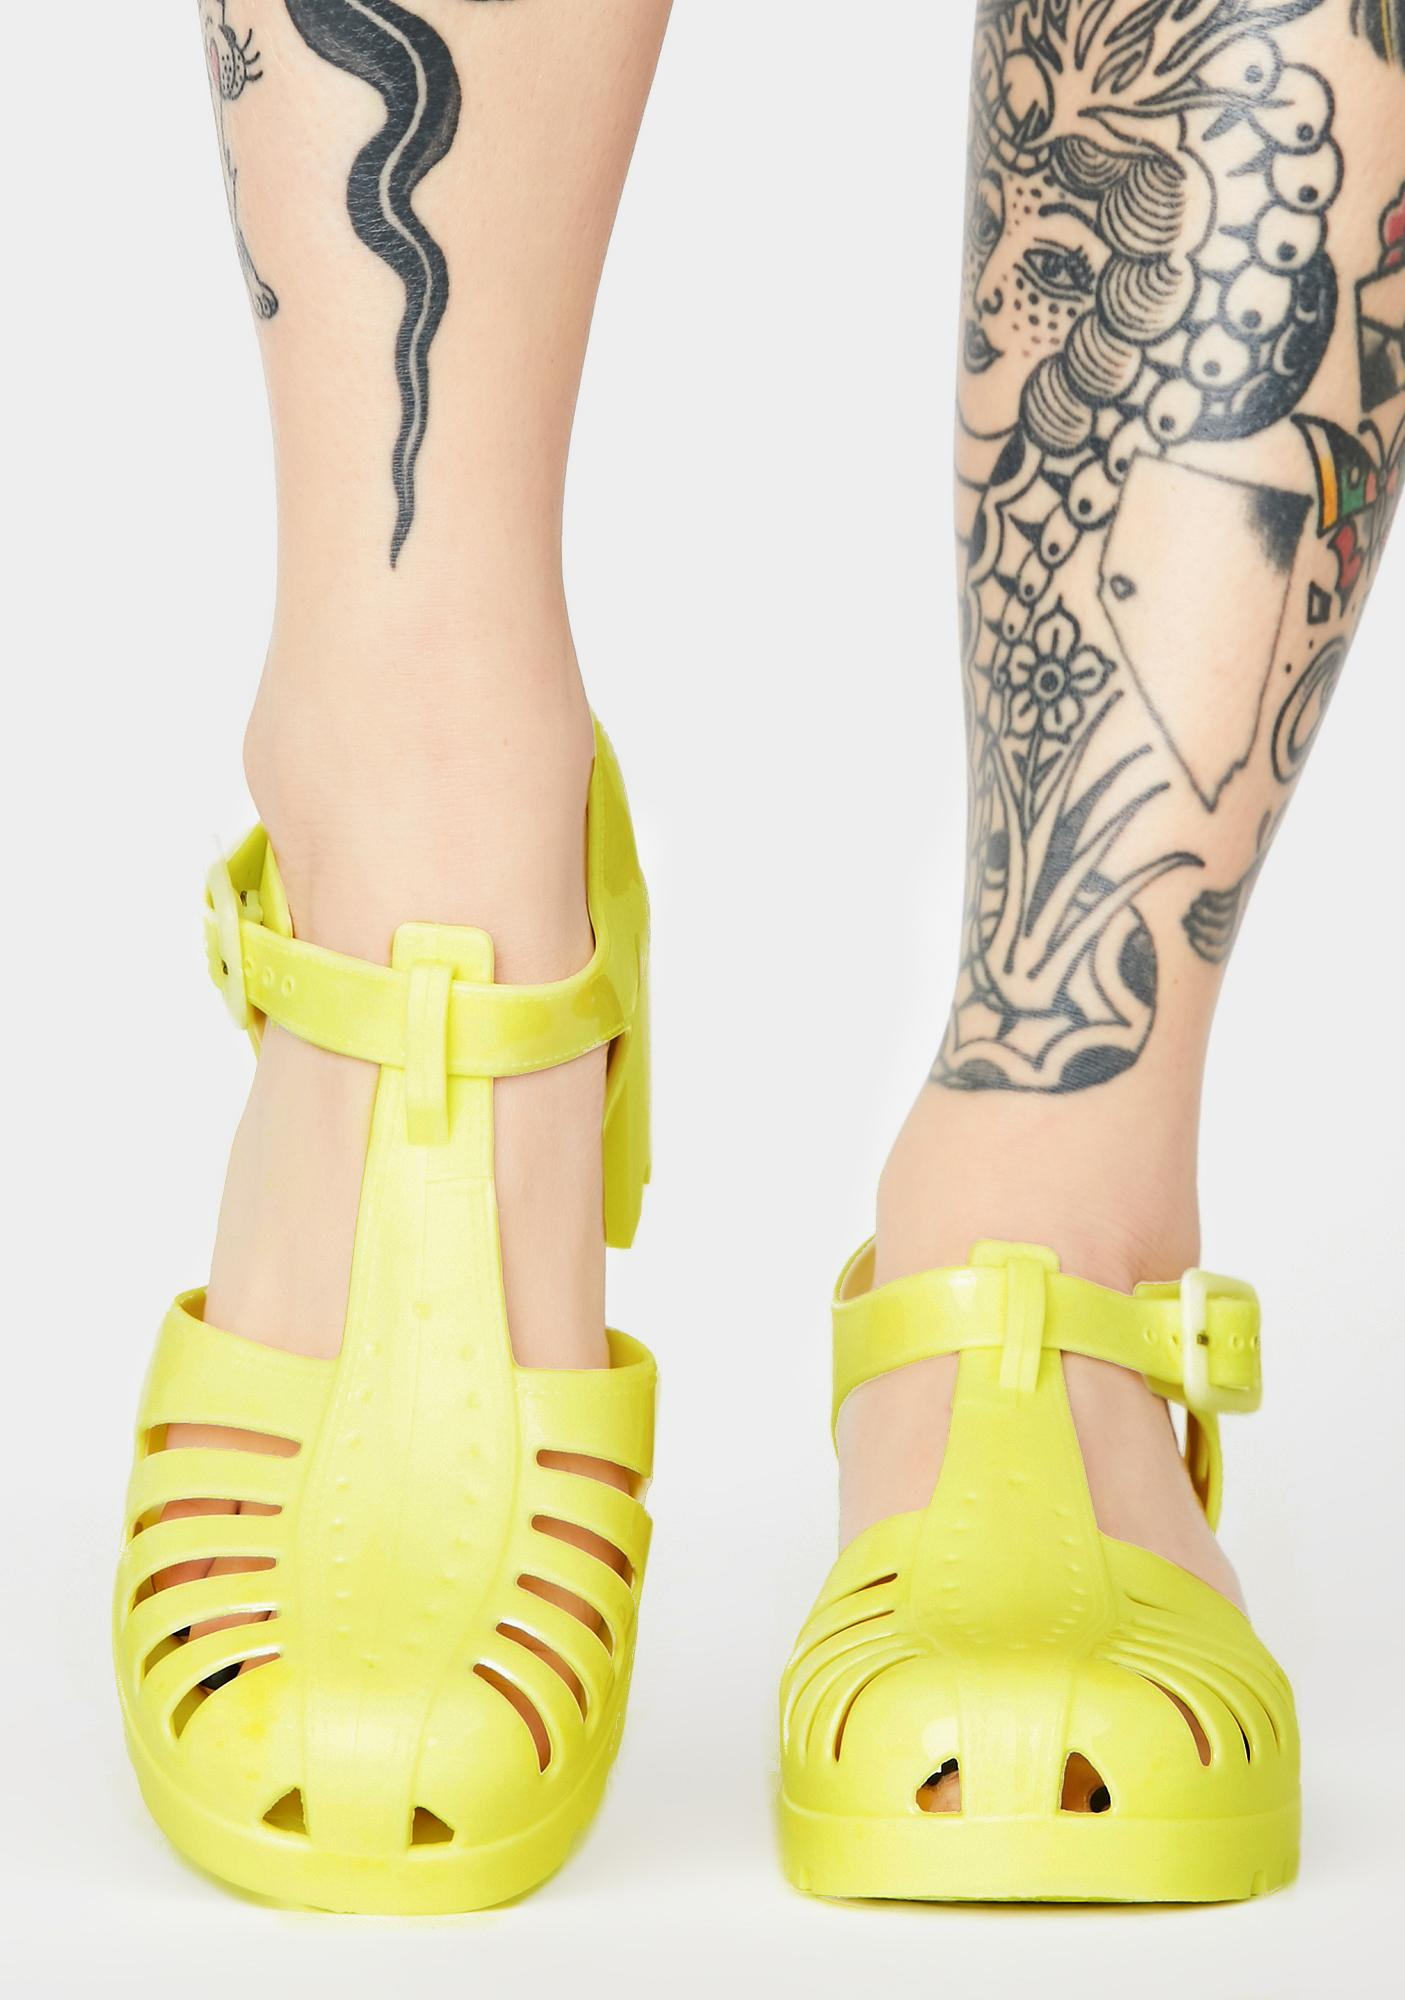 Lemonade Total Transparency Jelly Shoes